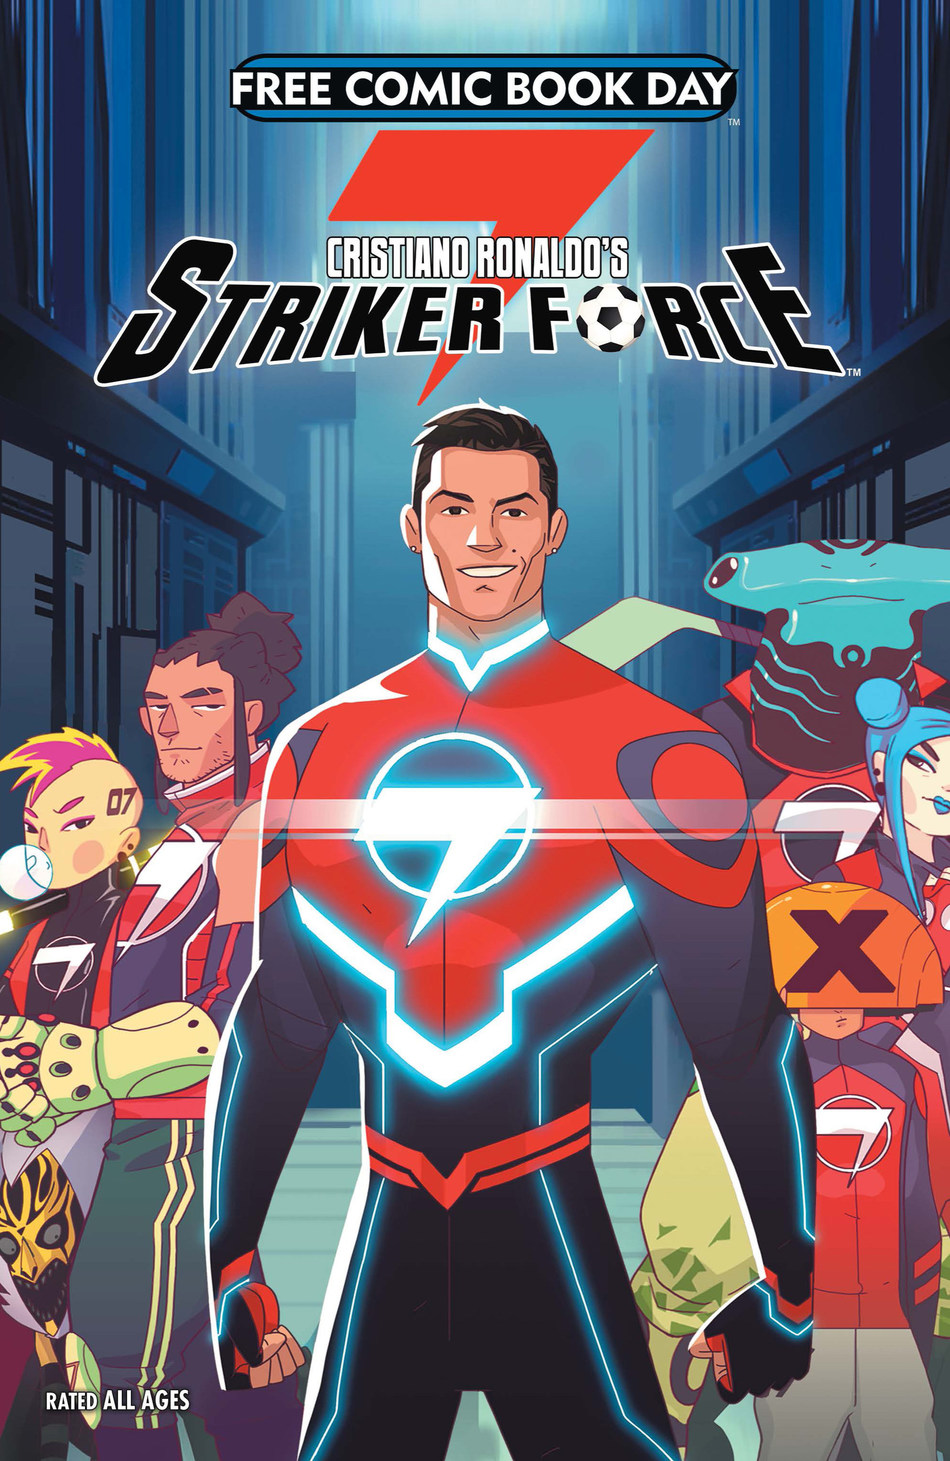 Cristiano Ronaldo's Striker Force 7 Cover for Free Comic Book Day